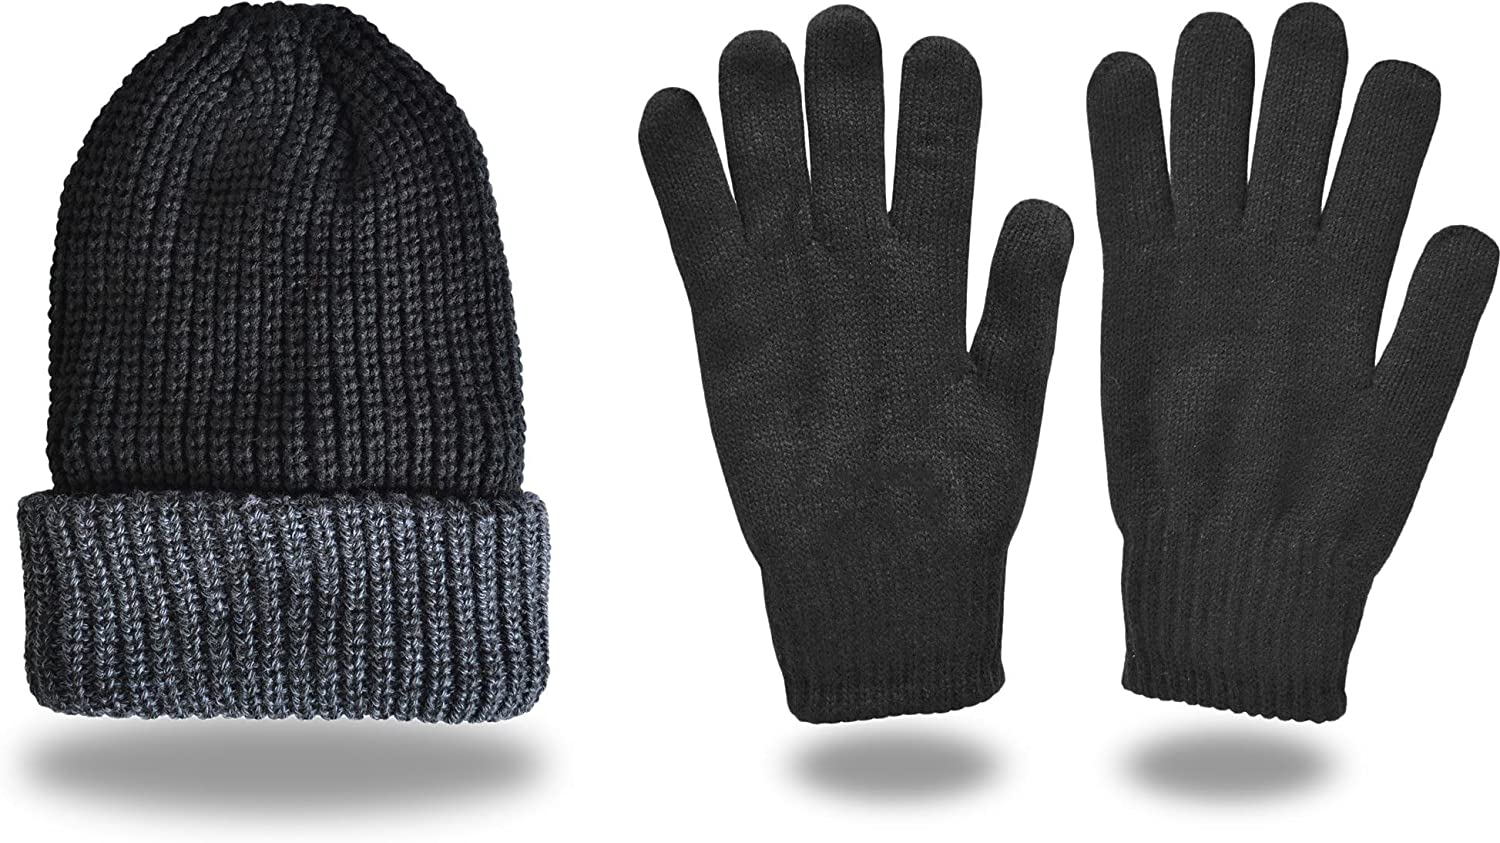 EXTREM WARMES Thermo-Set, Handschuhe + Mütze, hoher TOG-Isolationswert 2,3 [S-XL]